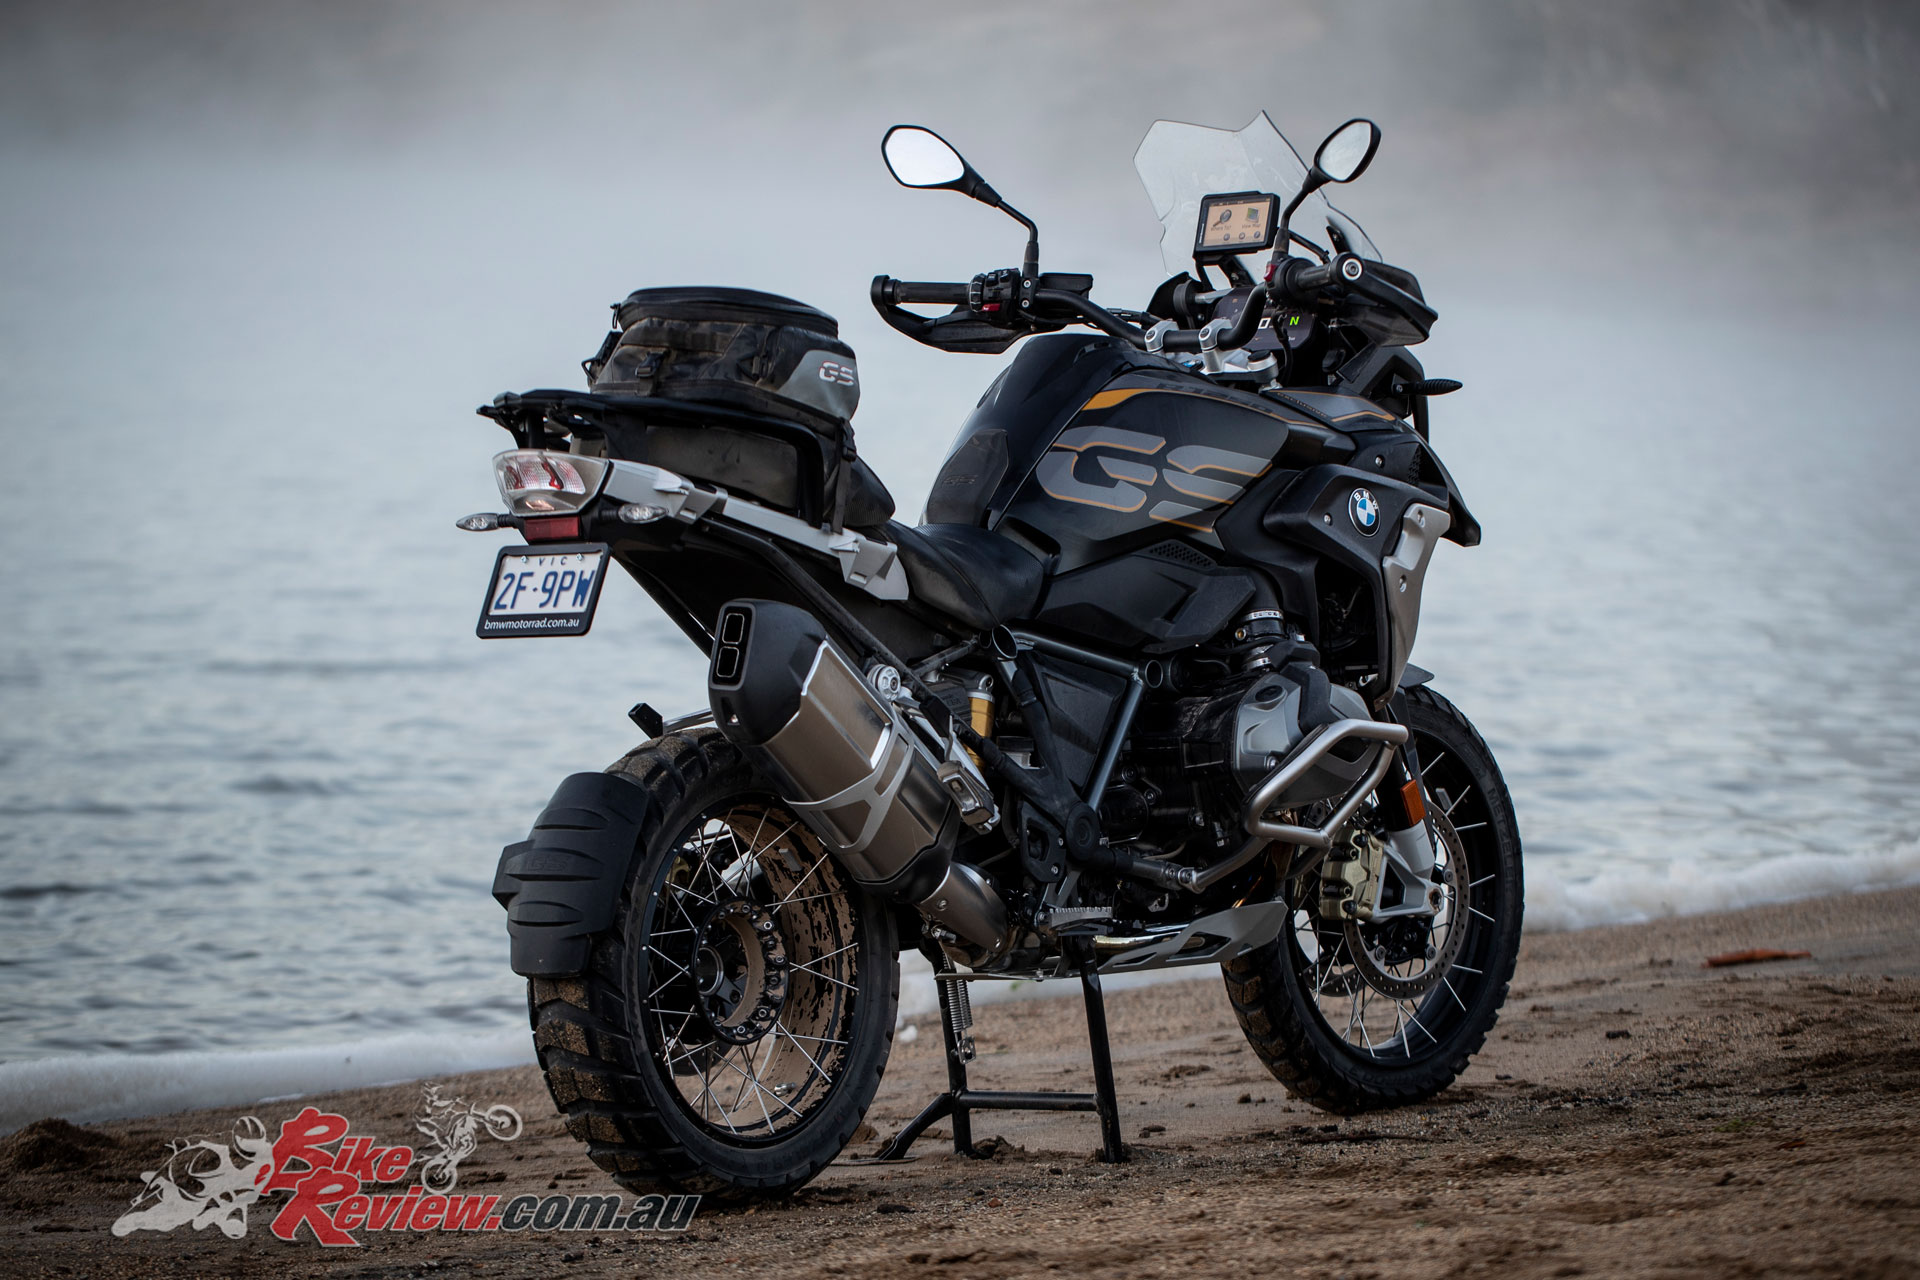 2019 BMW R 1250 GS - Exclusive